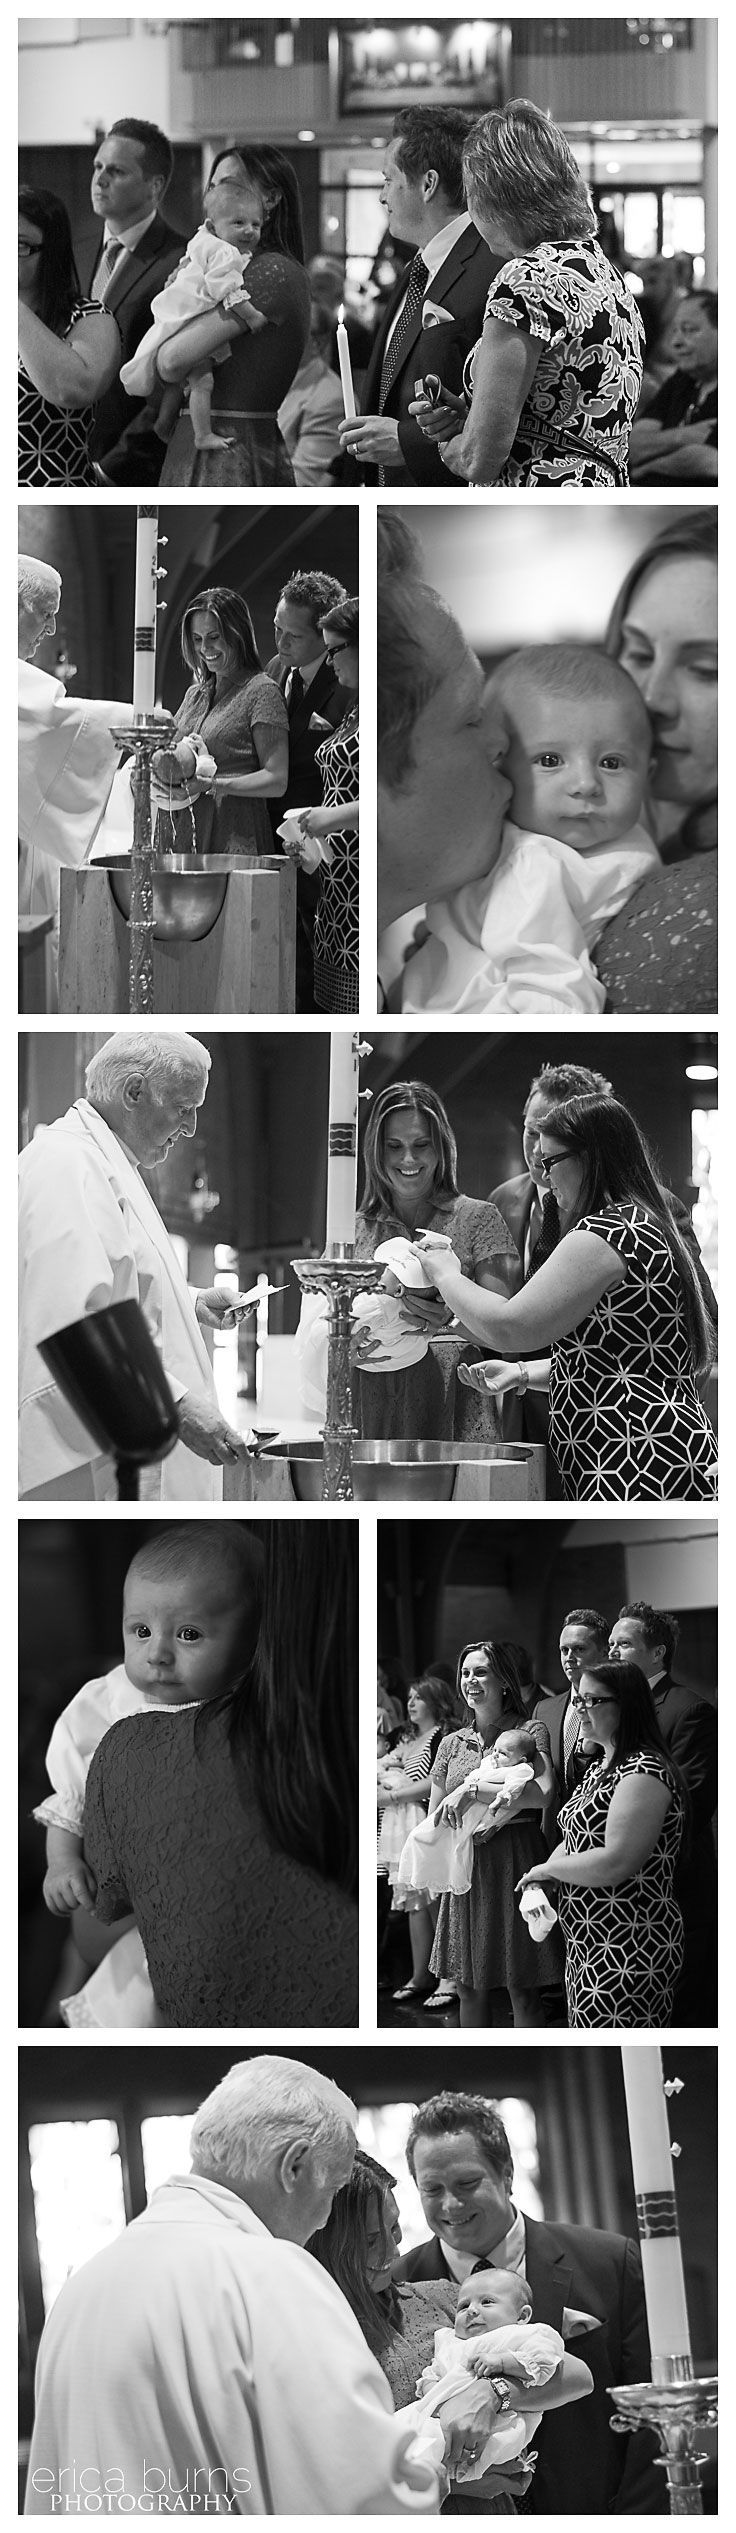 Baptism is the first step of the faith journey, and it's the commitment to God that we would follow him. Look at the child, so innocent, so beautiful; god loves every newly born, and he gives them the chance to start fresh.